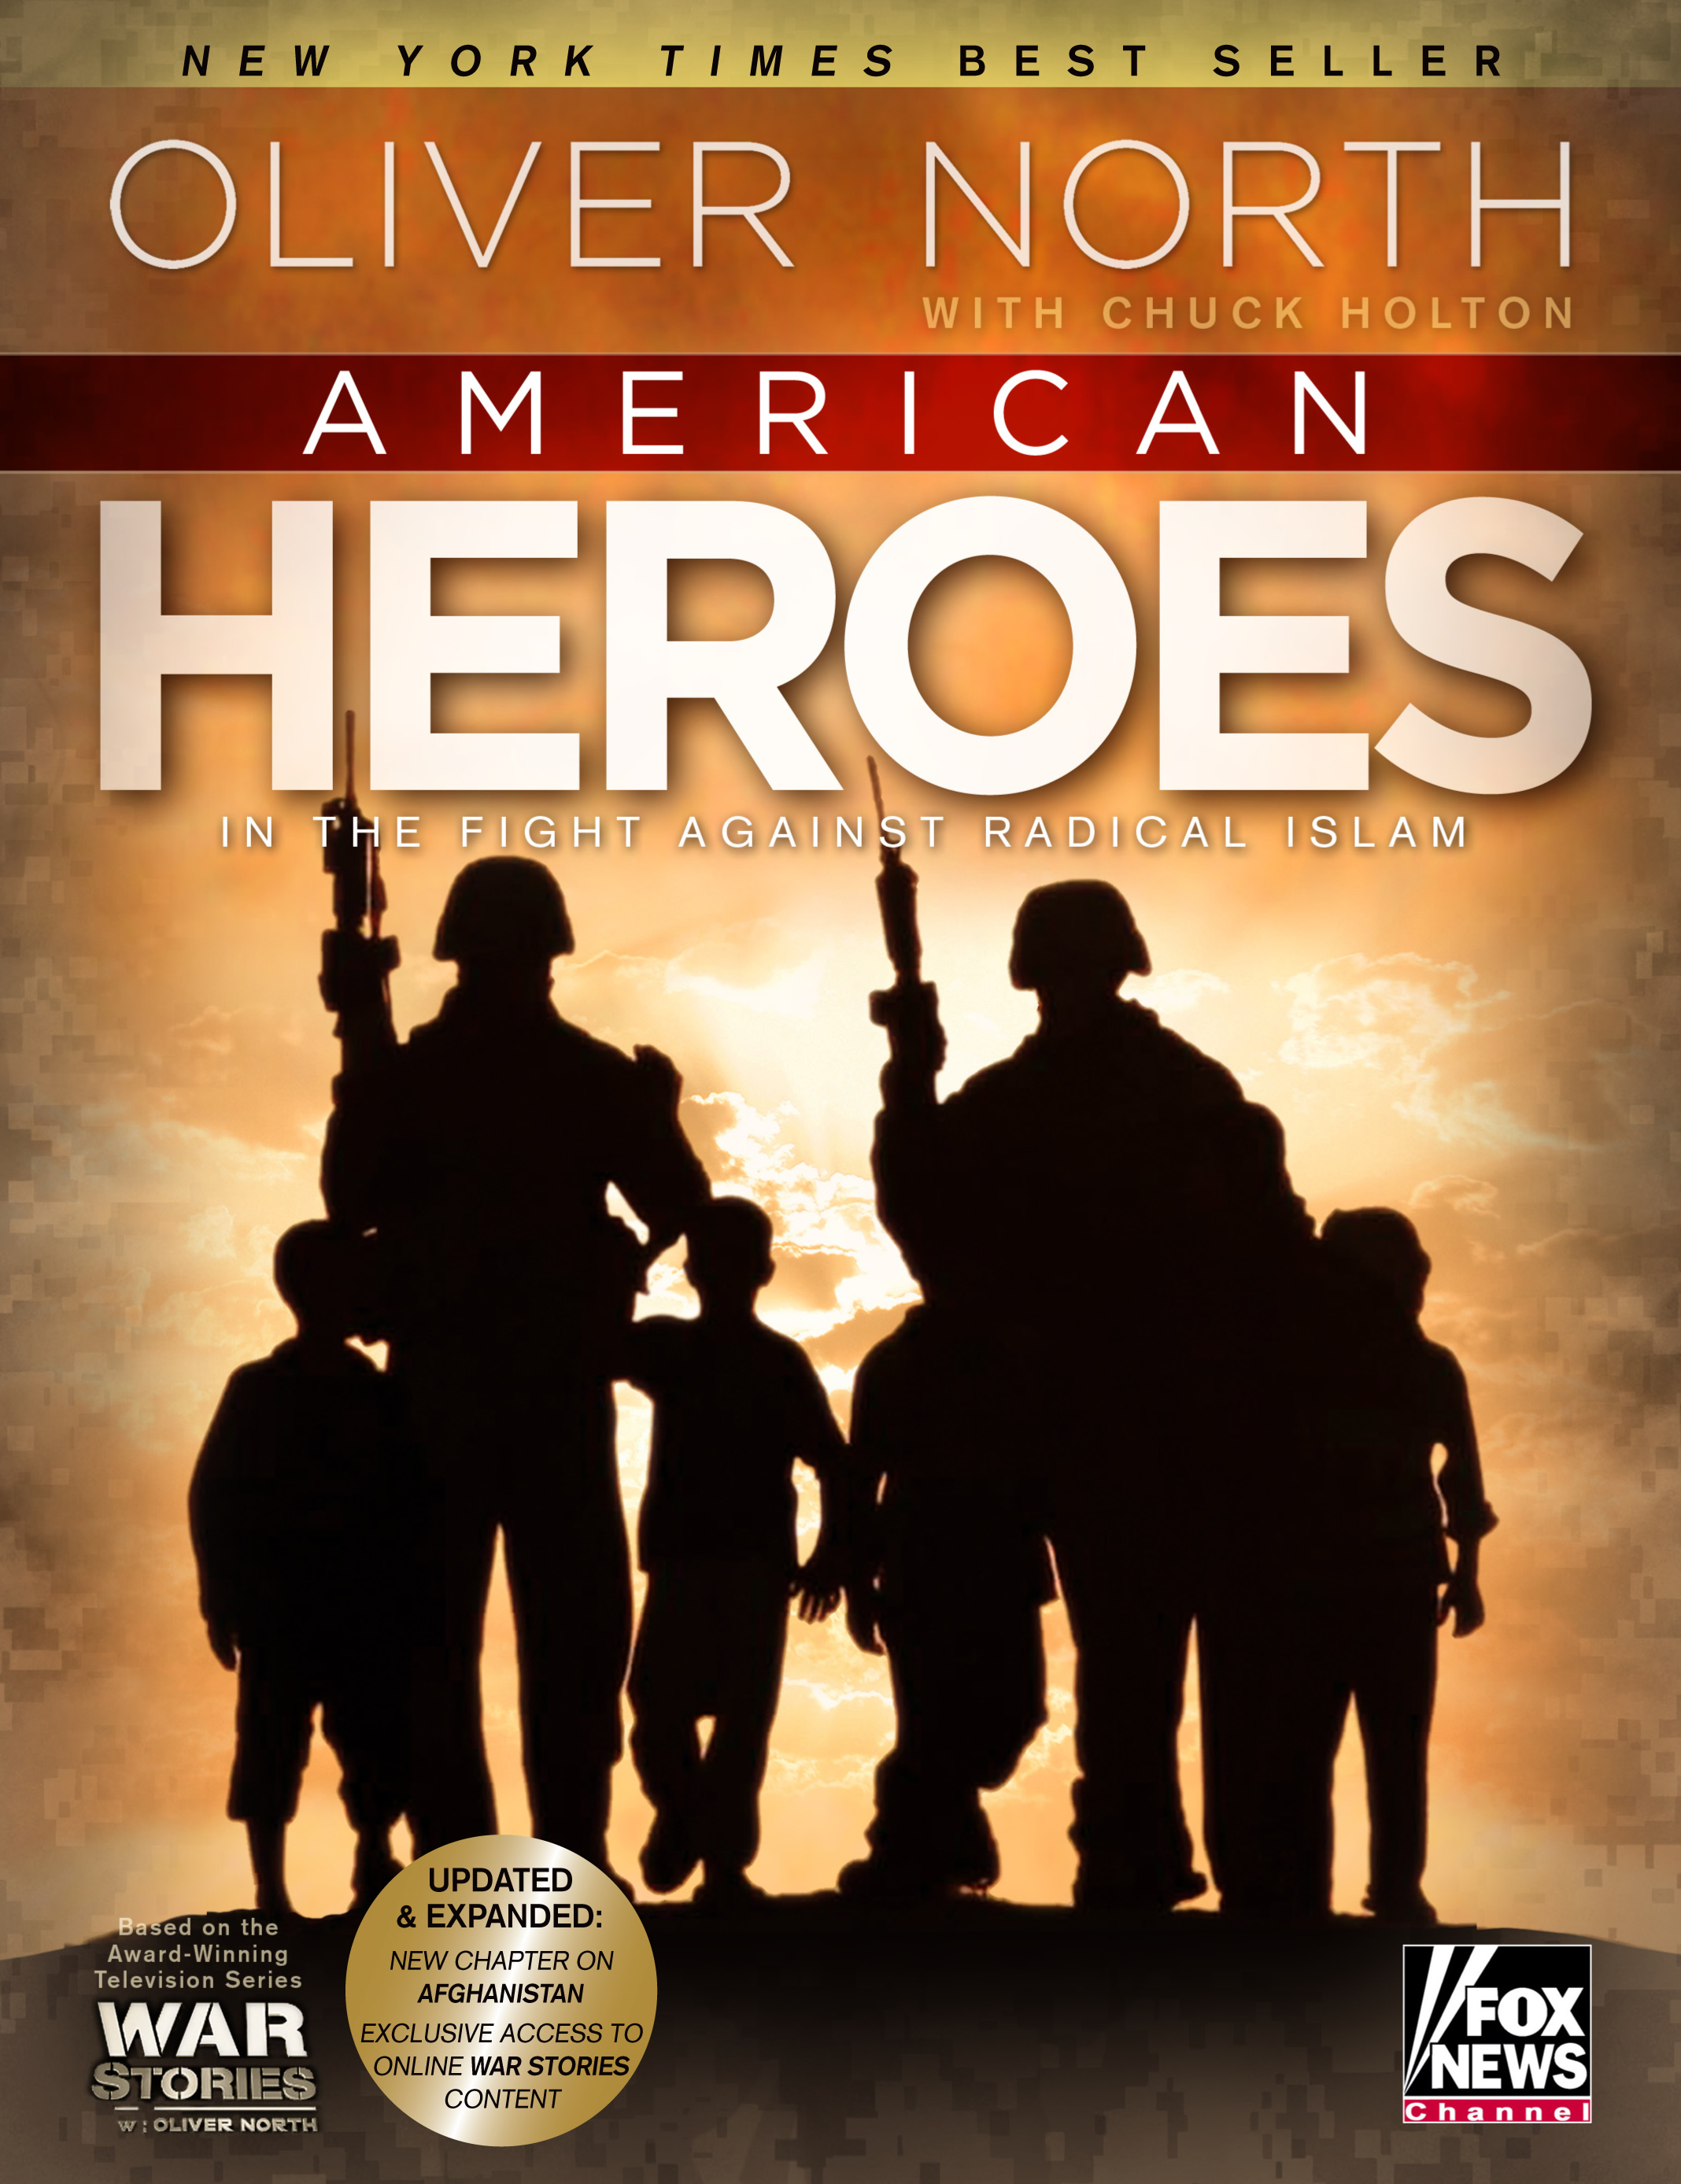 American Heroes in the Fight Against Radical Islam - Buy Now